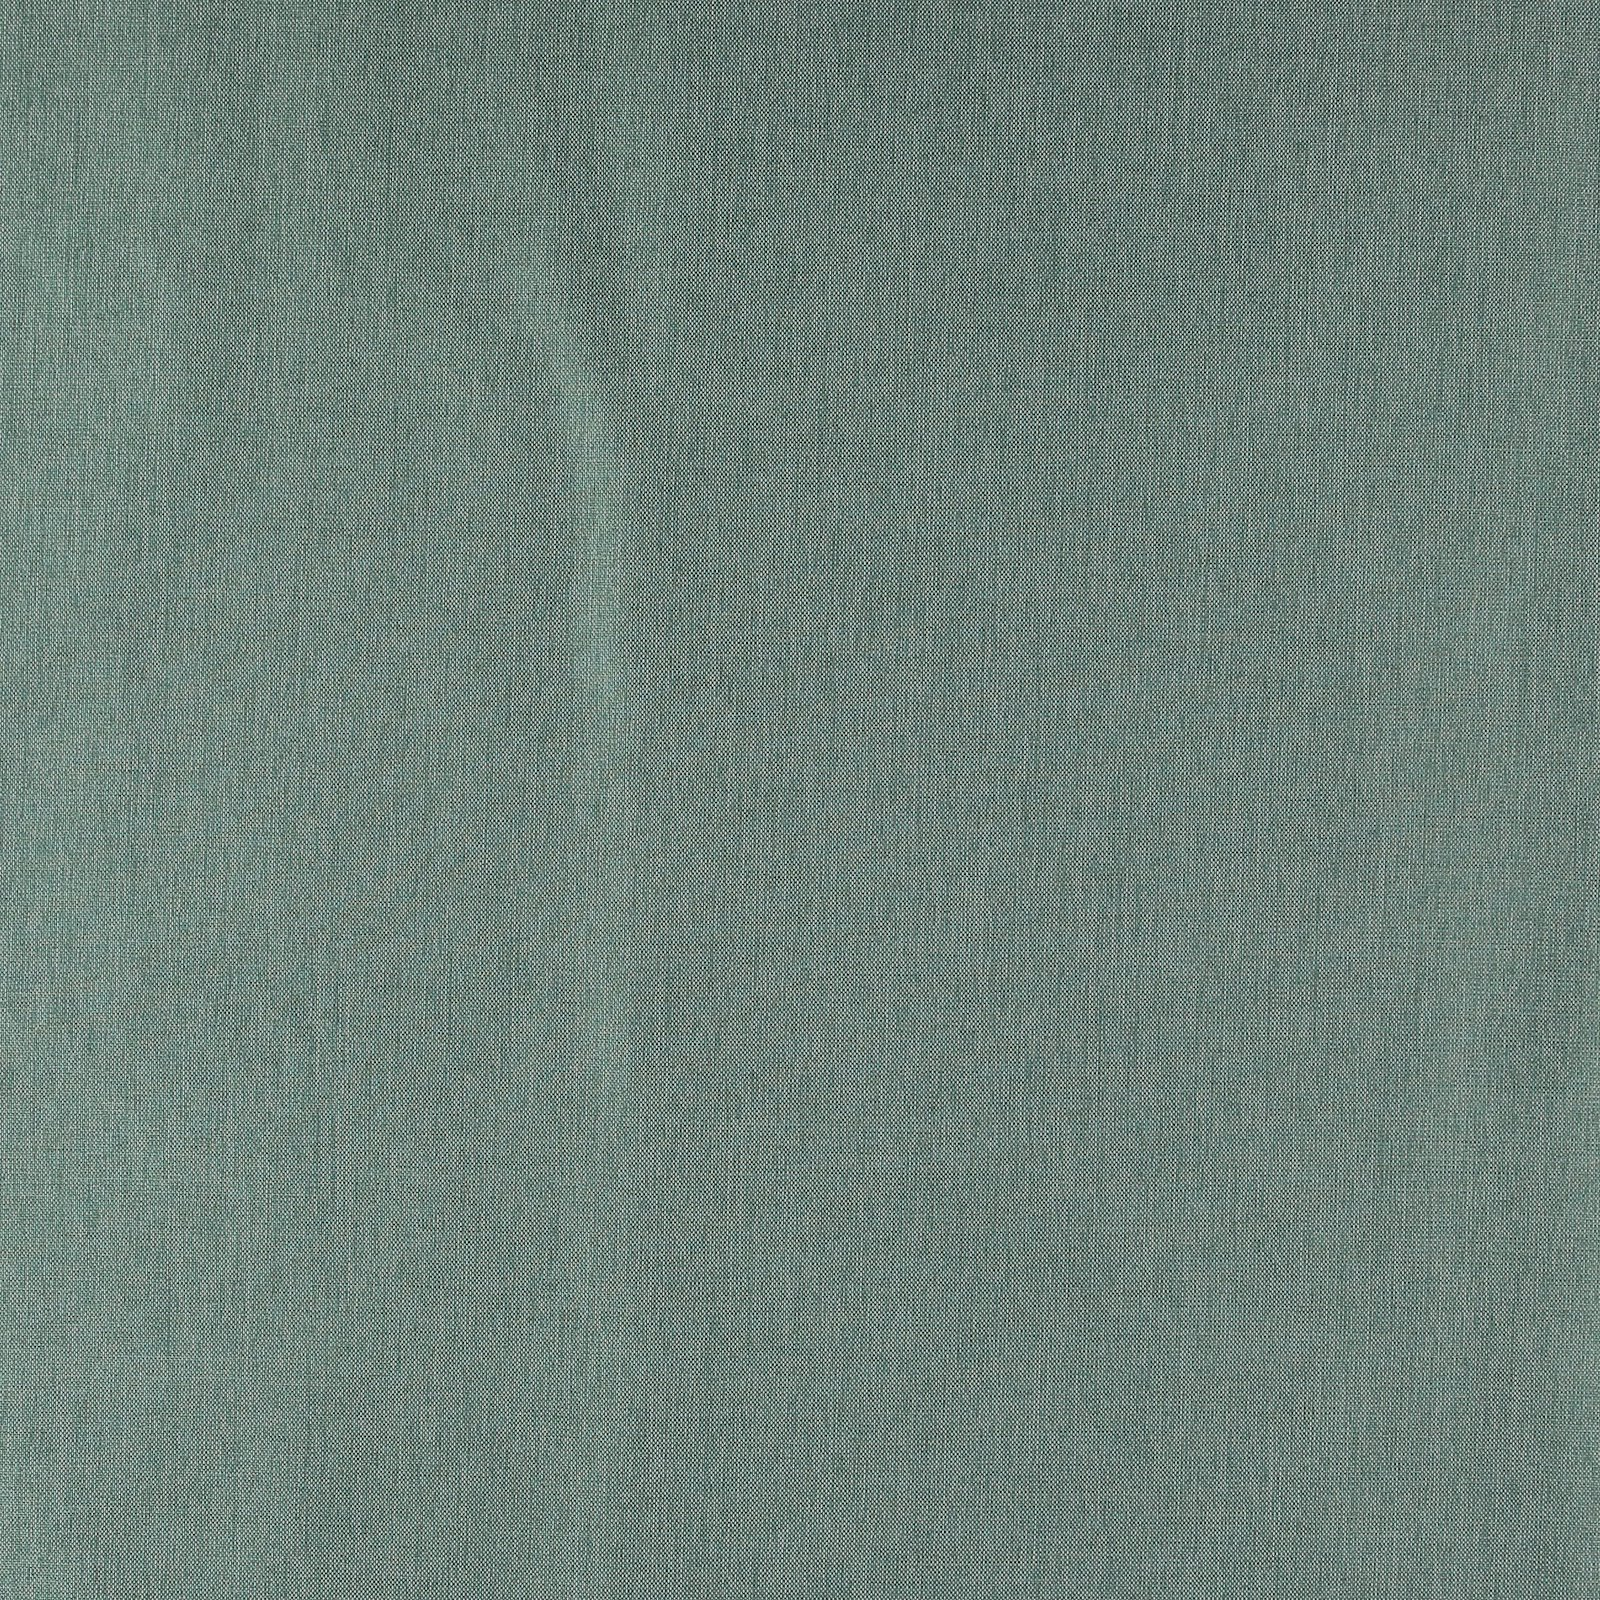 Upholstery fabric dusty green melange 823993_pack_solid